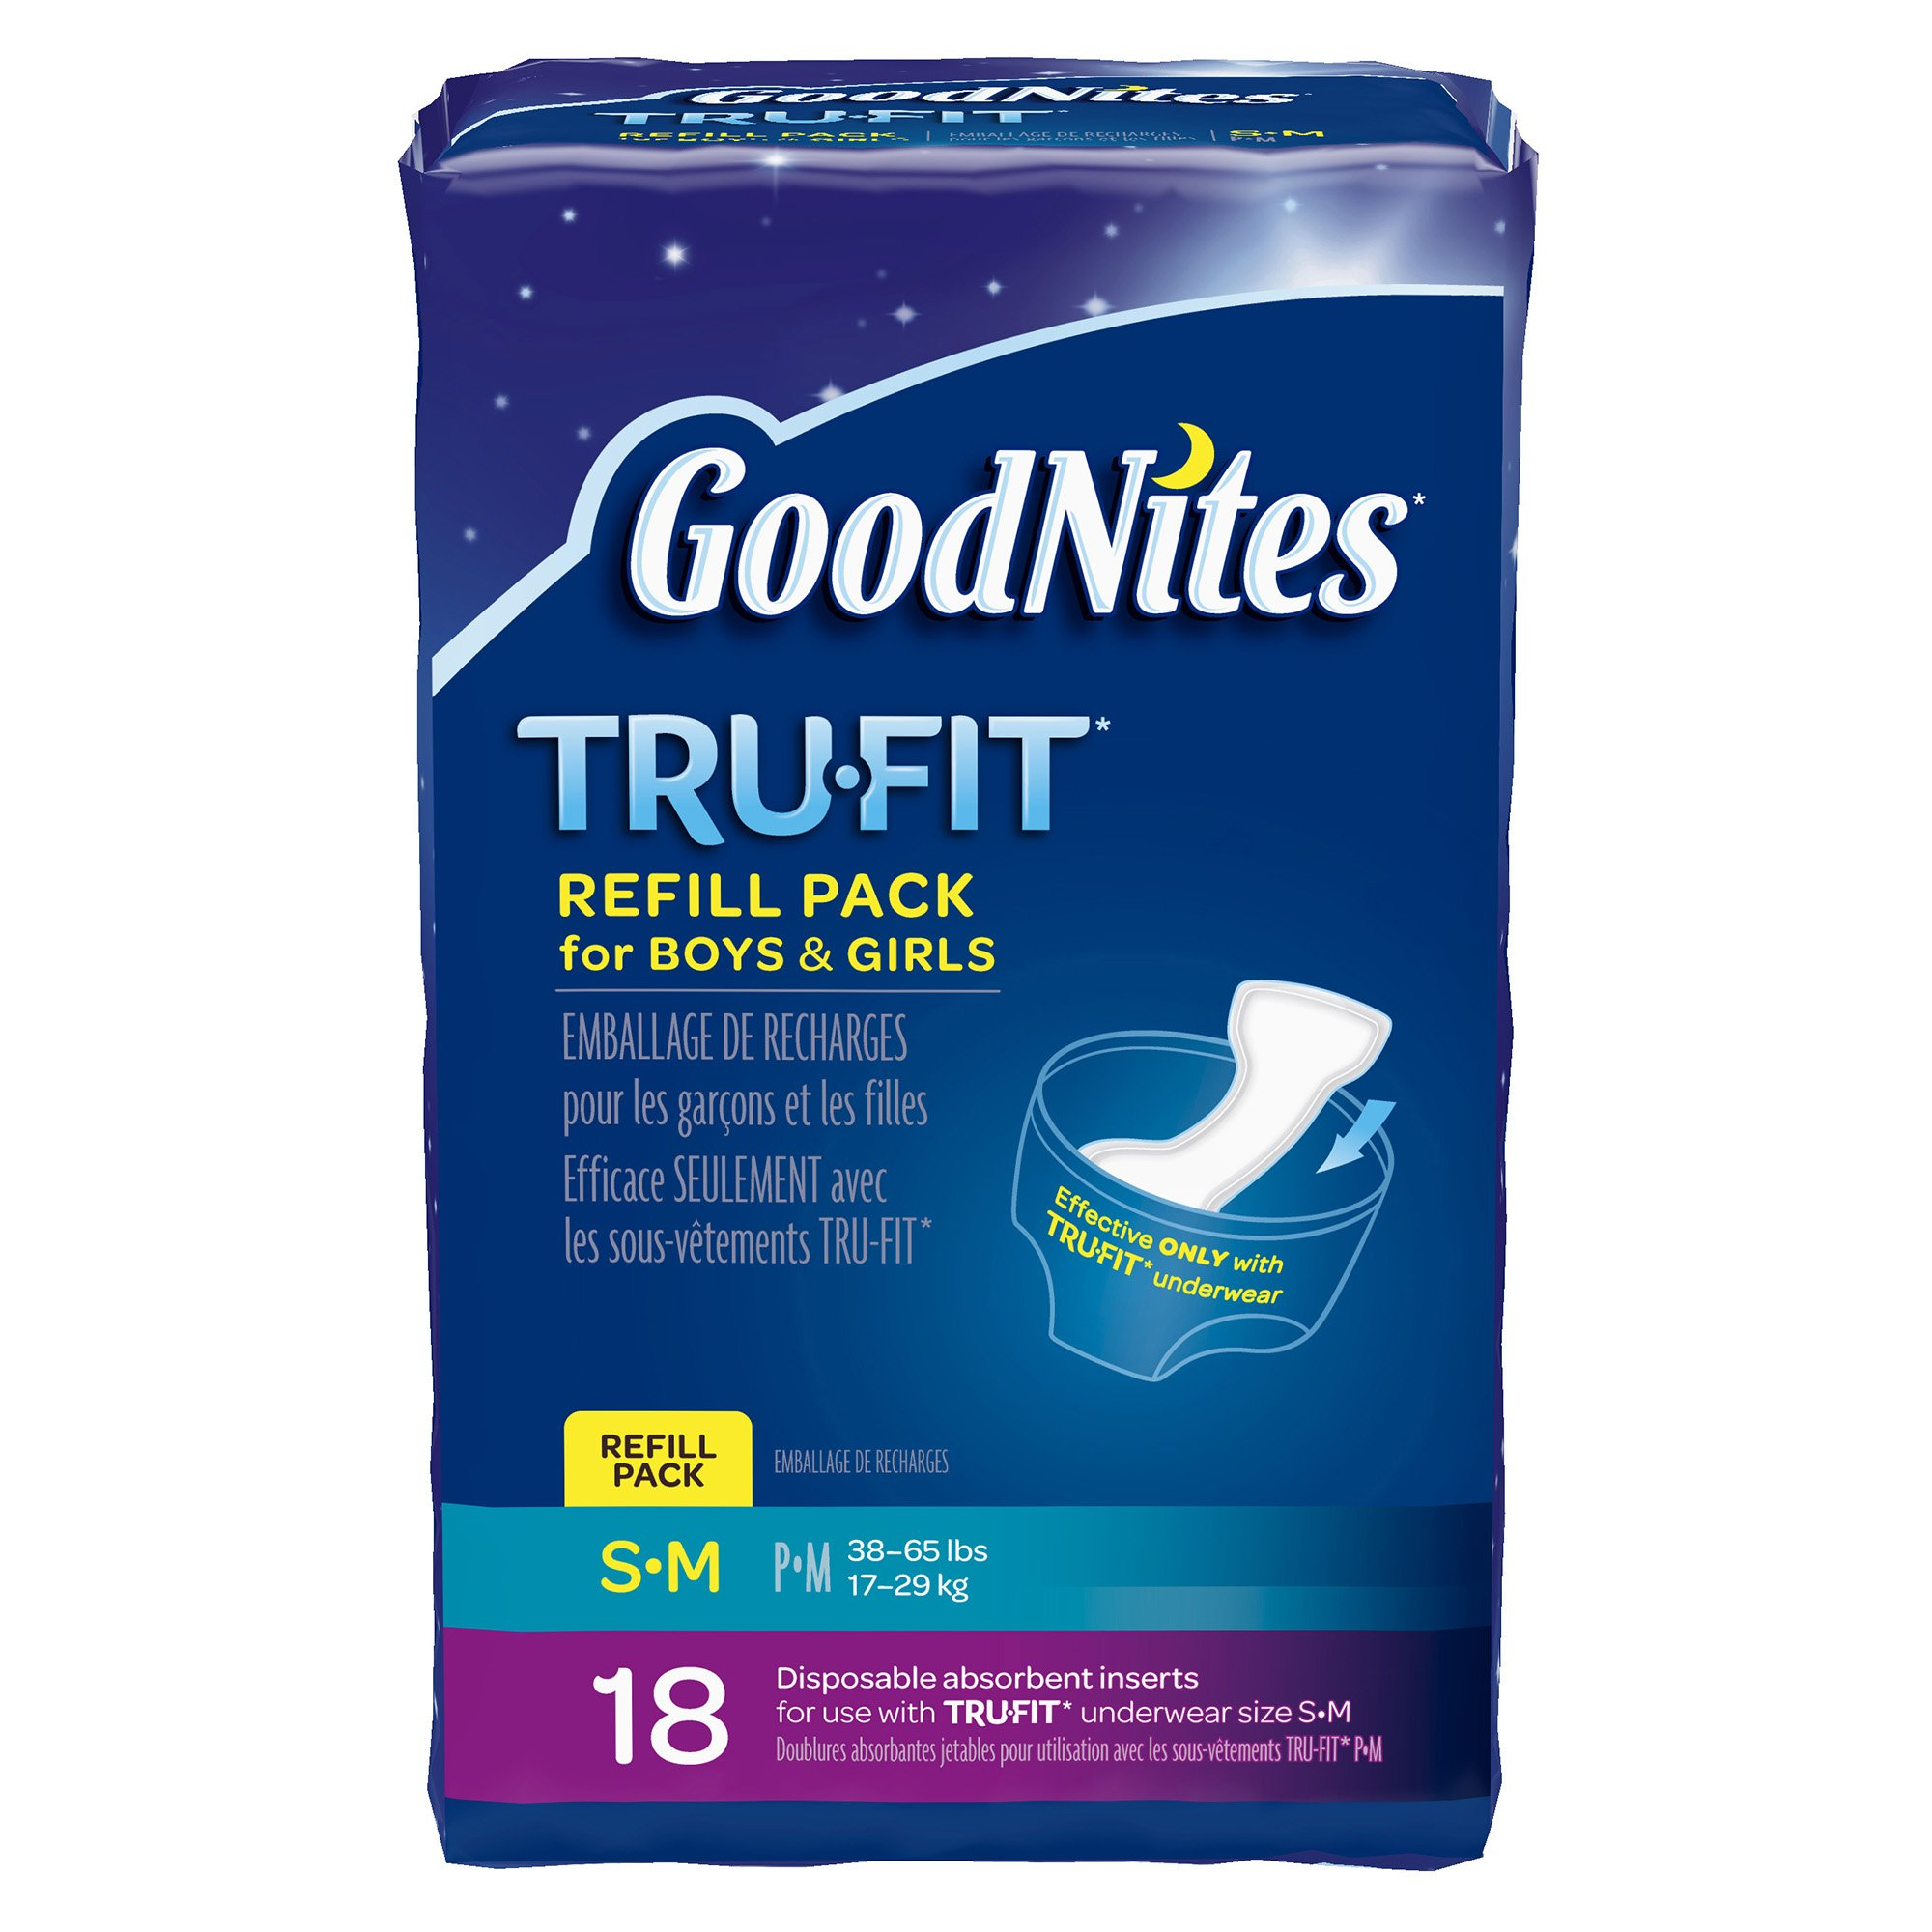 GoodNites TRU-FIT Disposable Absorbent Inserts for Boys & Girls, Refill  Pack, Size